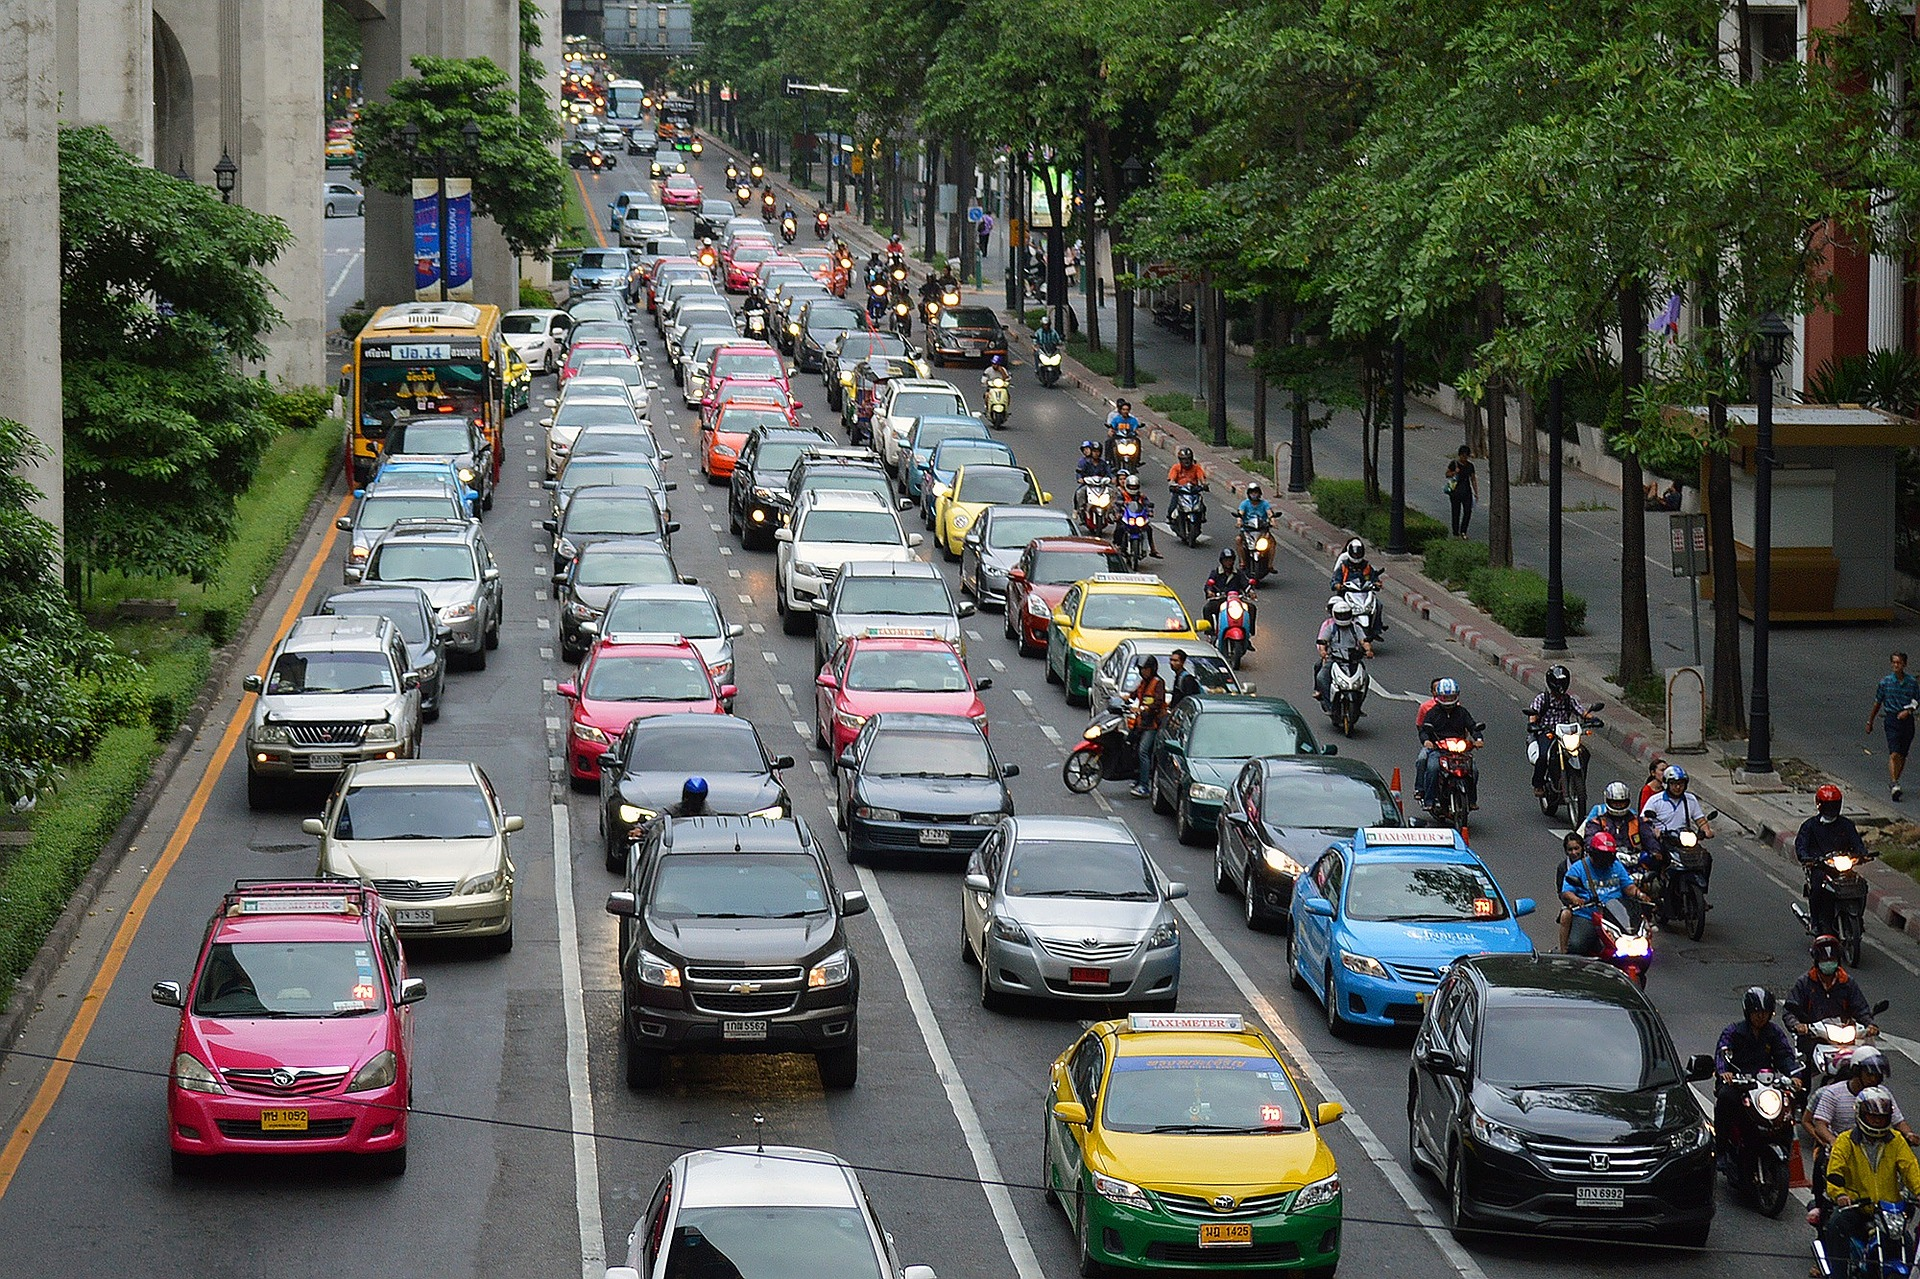 The 10 minute peak for car accidents during evening rush hour